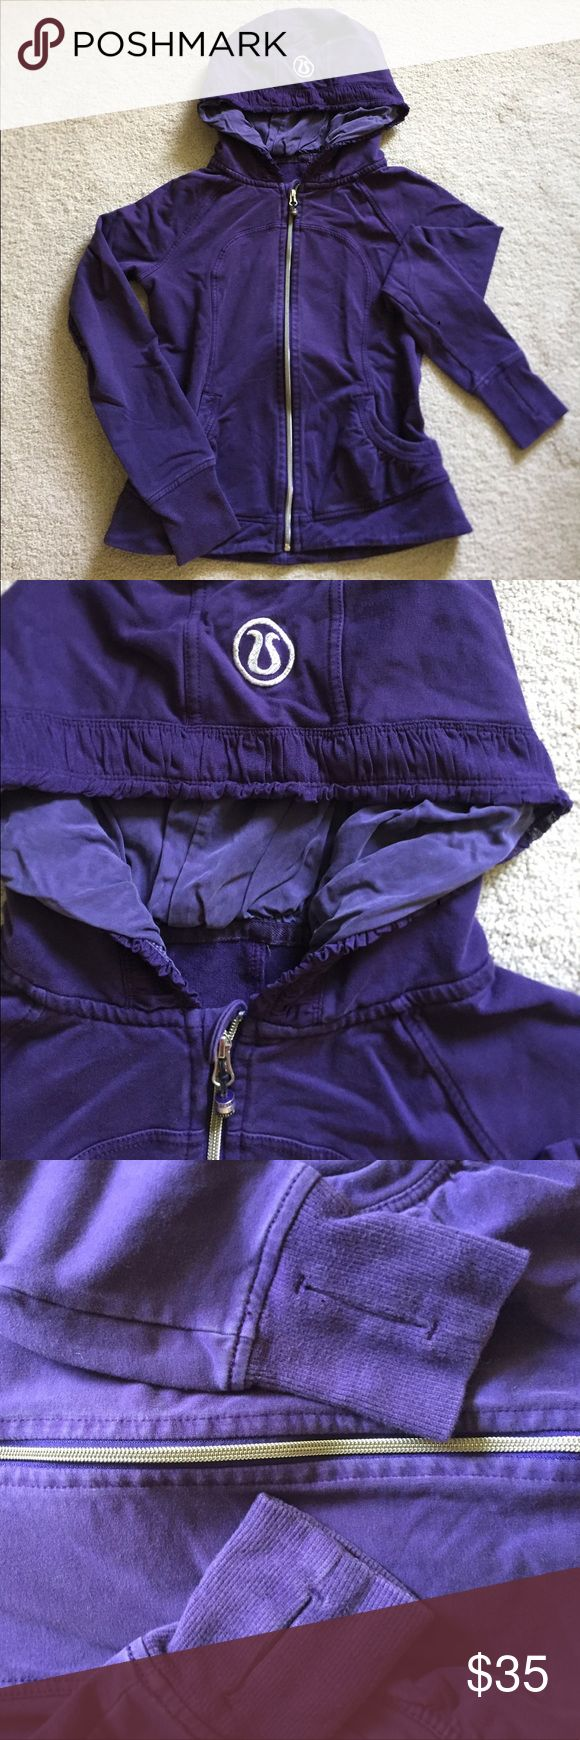 Purple Lululemon Hoodie Adorable purple lululemon hoodie.  Has ribbon edging around the hood and beaded logo at end of zipper still attached.  Definite fading on this, but material is still in good condition. lululemon athletica Tops Sweatshirts & Hoodies